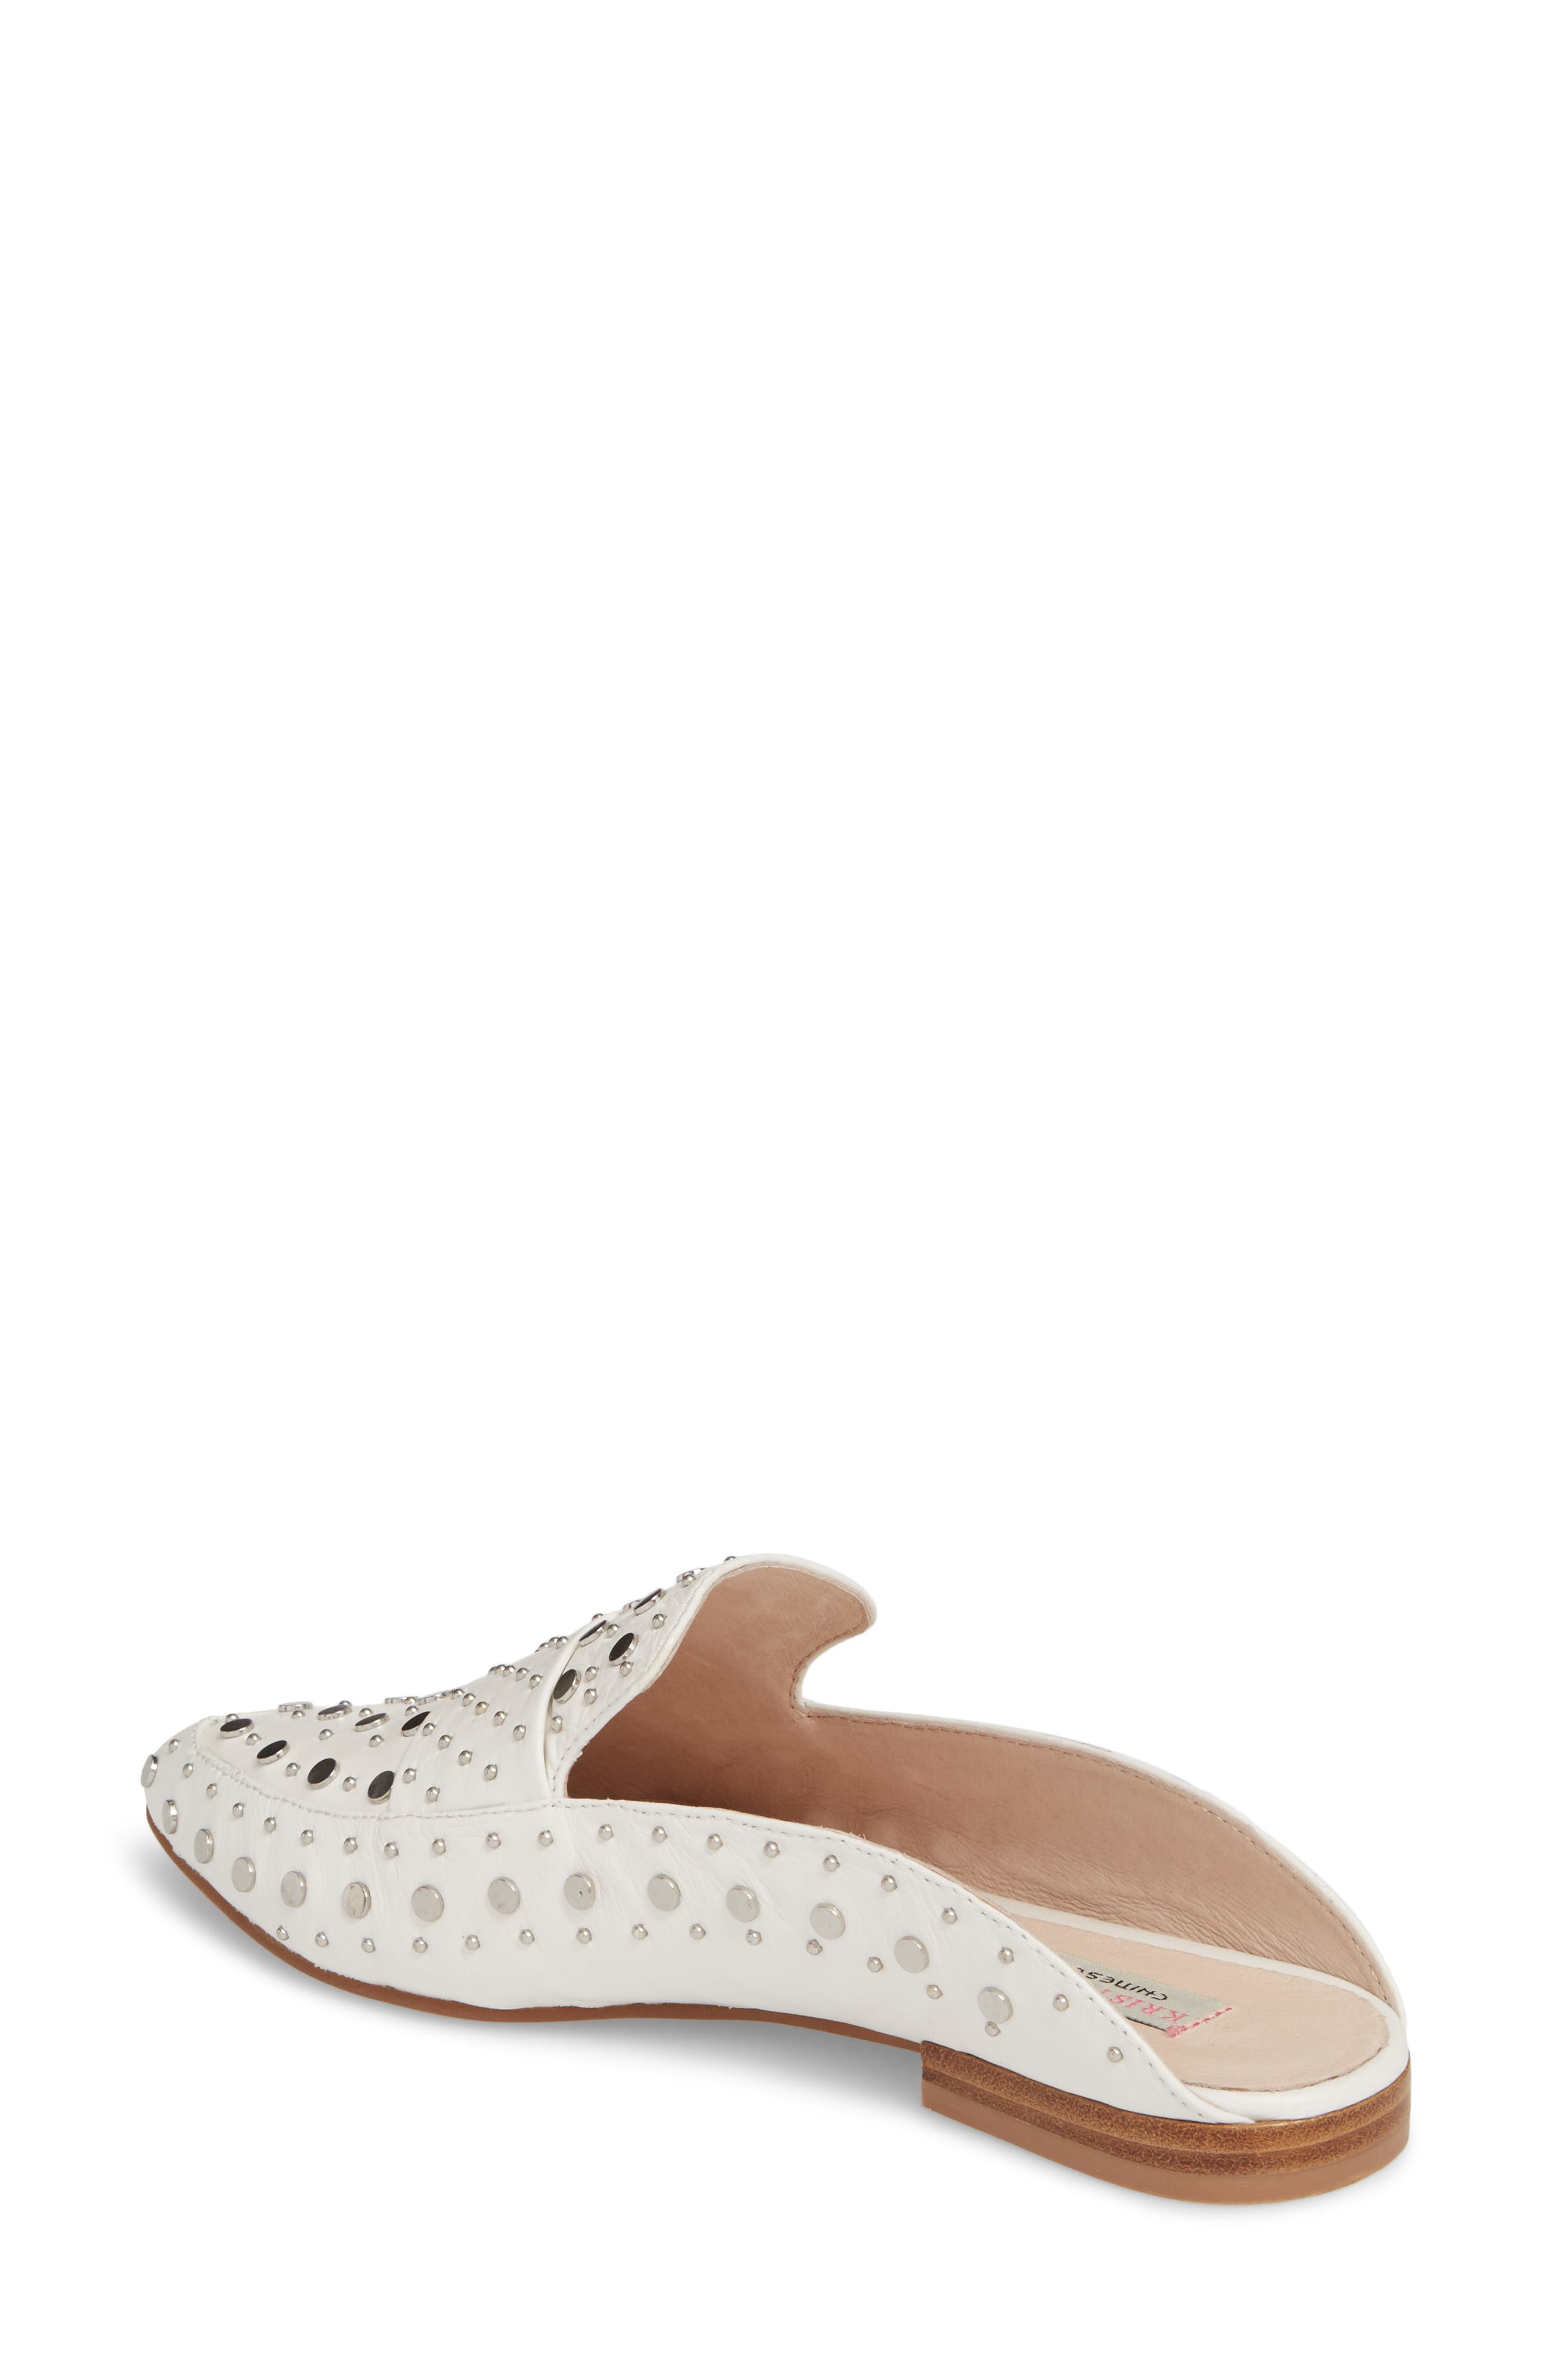 Charlie Studded Loafer Mule,                             Alternate thumbnail 2, color,                             WHITE LEATHER